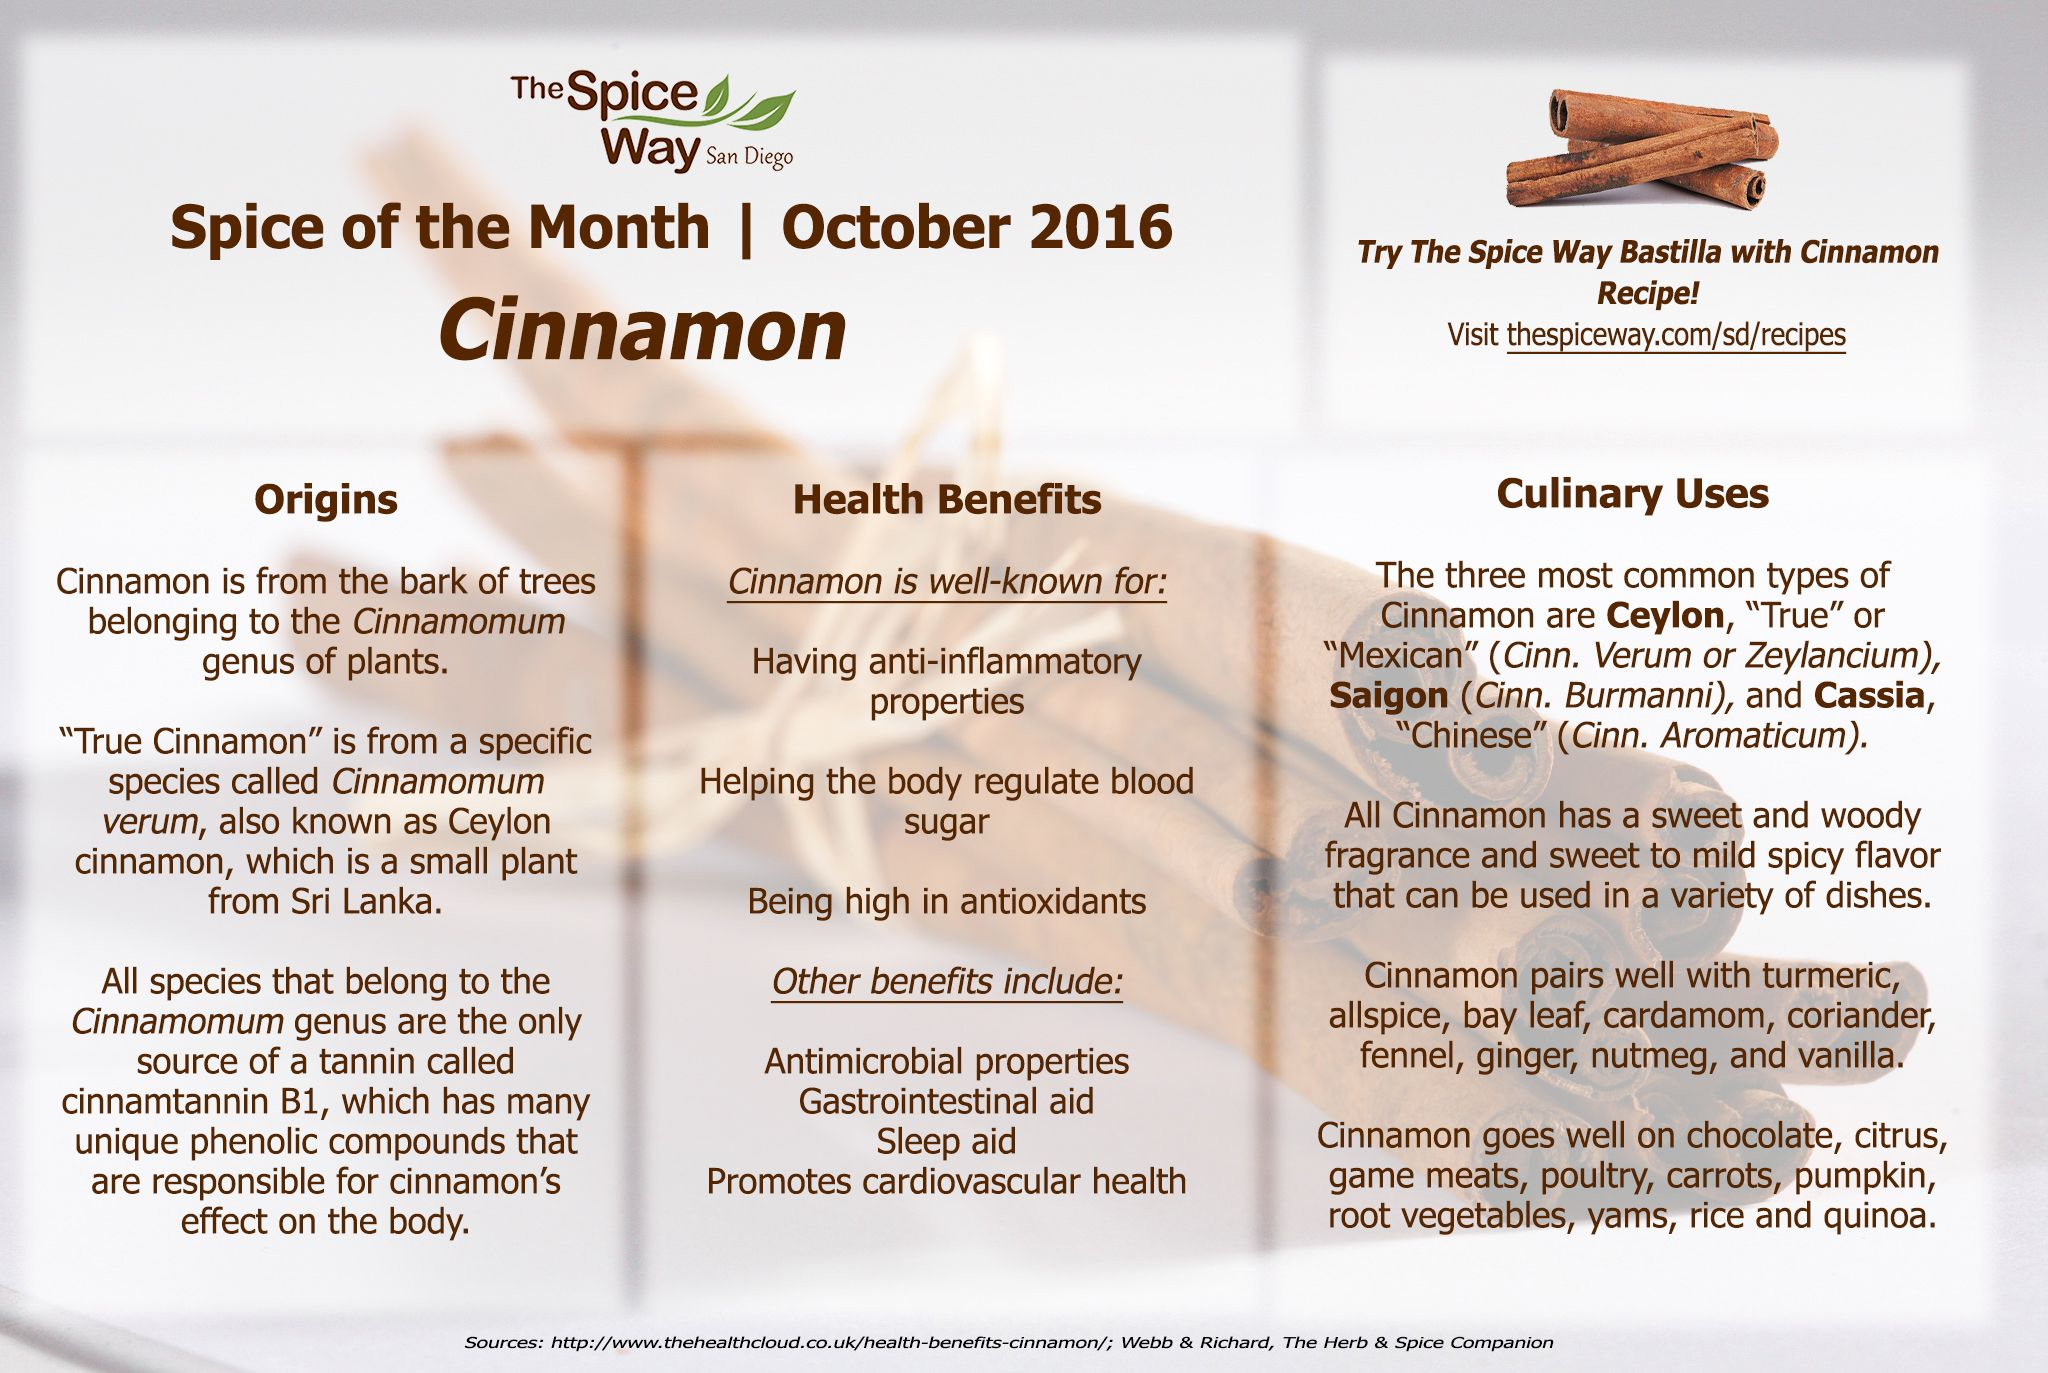 Spice of the Month - Cinnamon